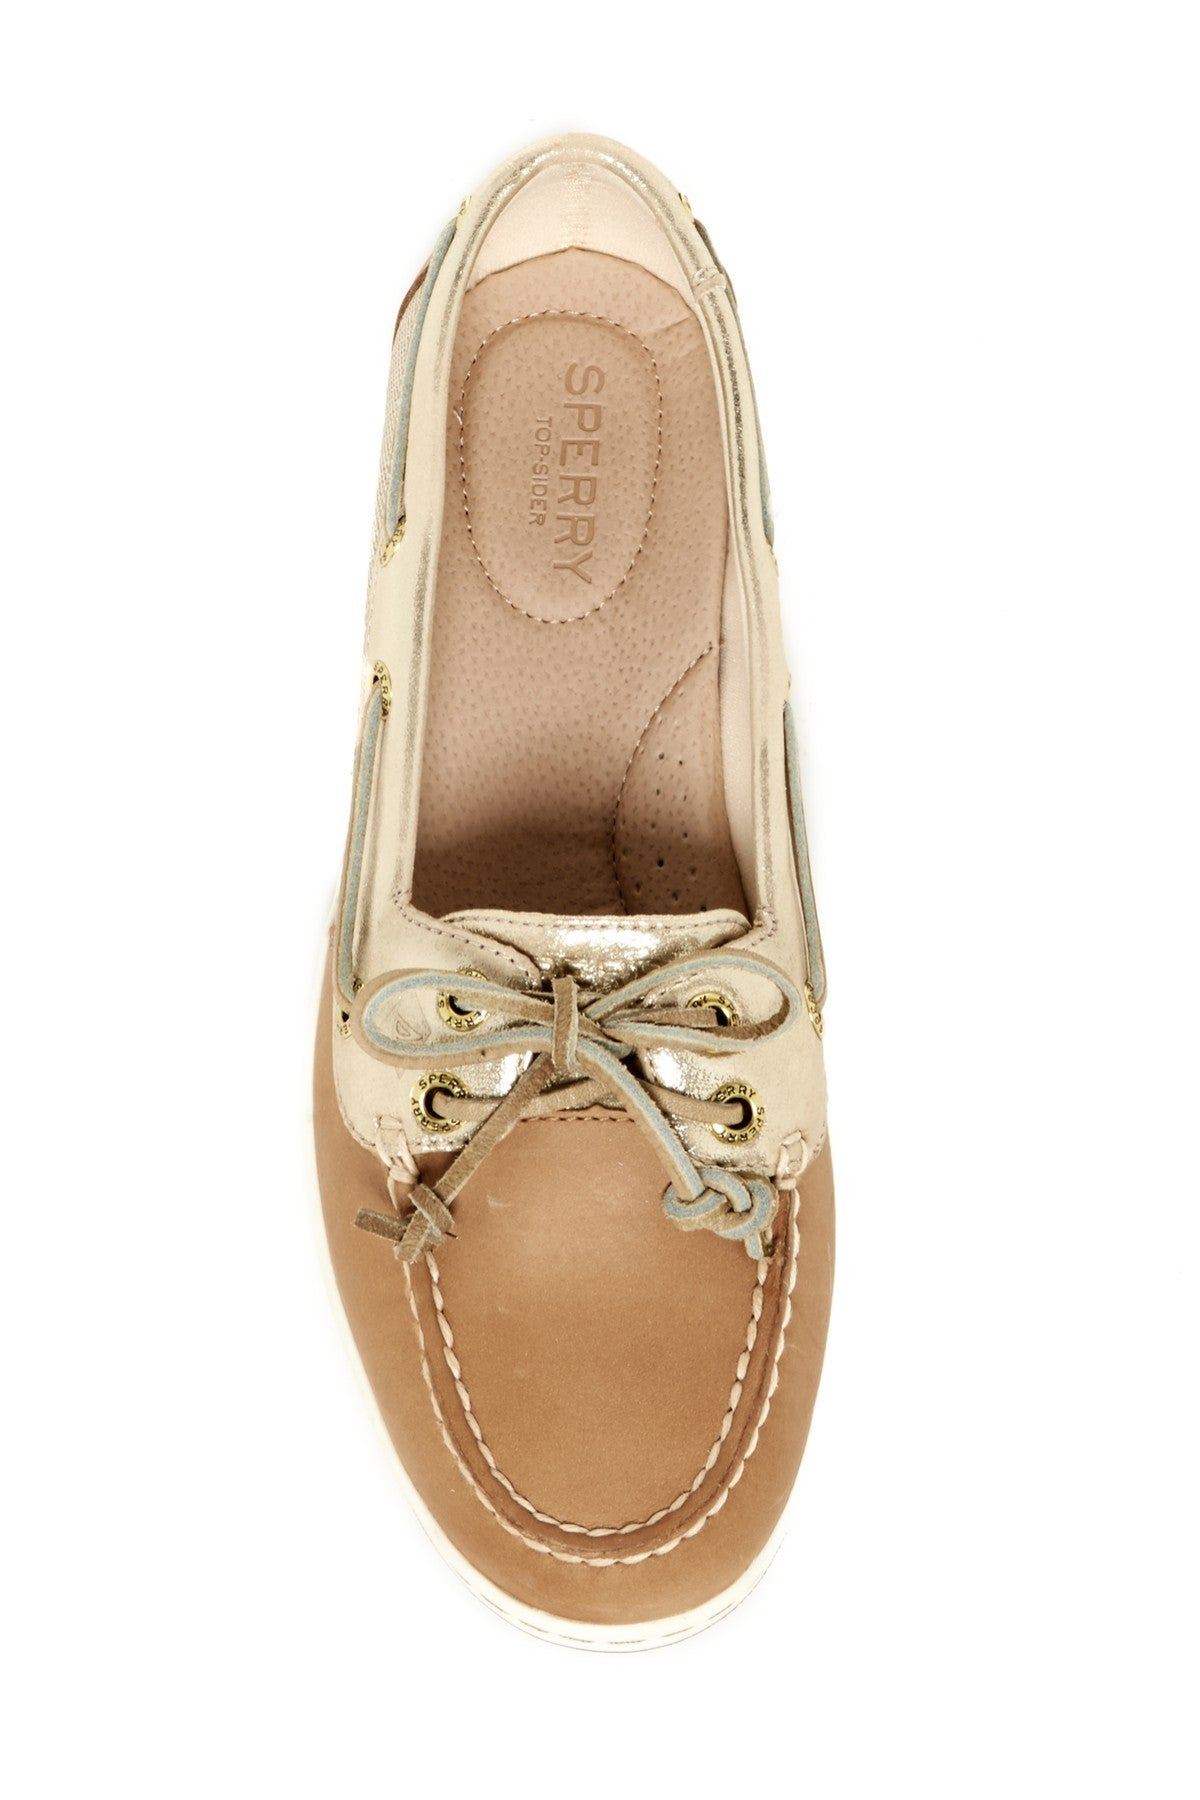 Sperry Women's Firefish Metallic Linen Gold Boat Shoes by Sperry Top-Sider from THE LUCKY KNOT - 2